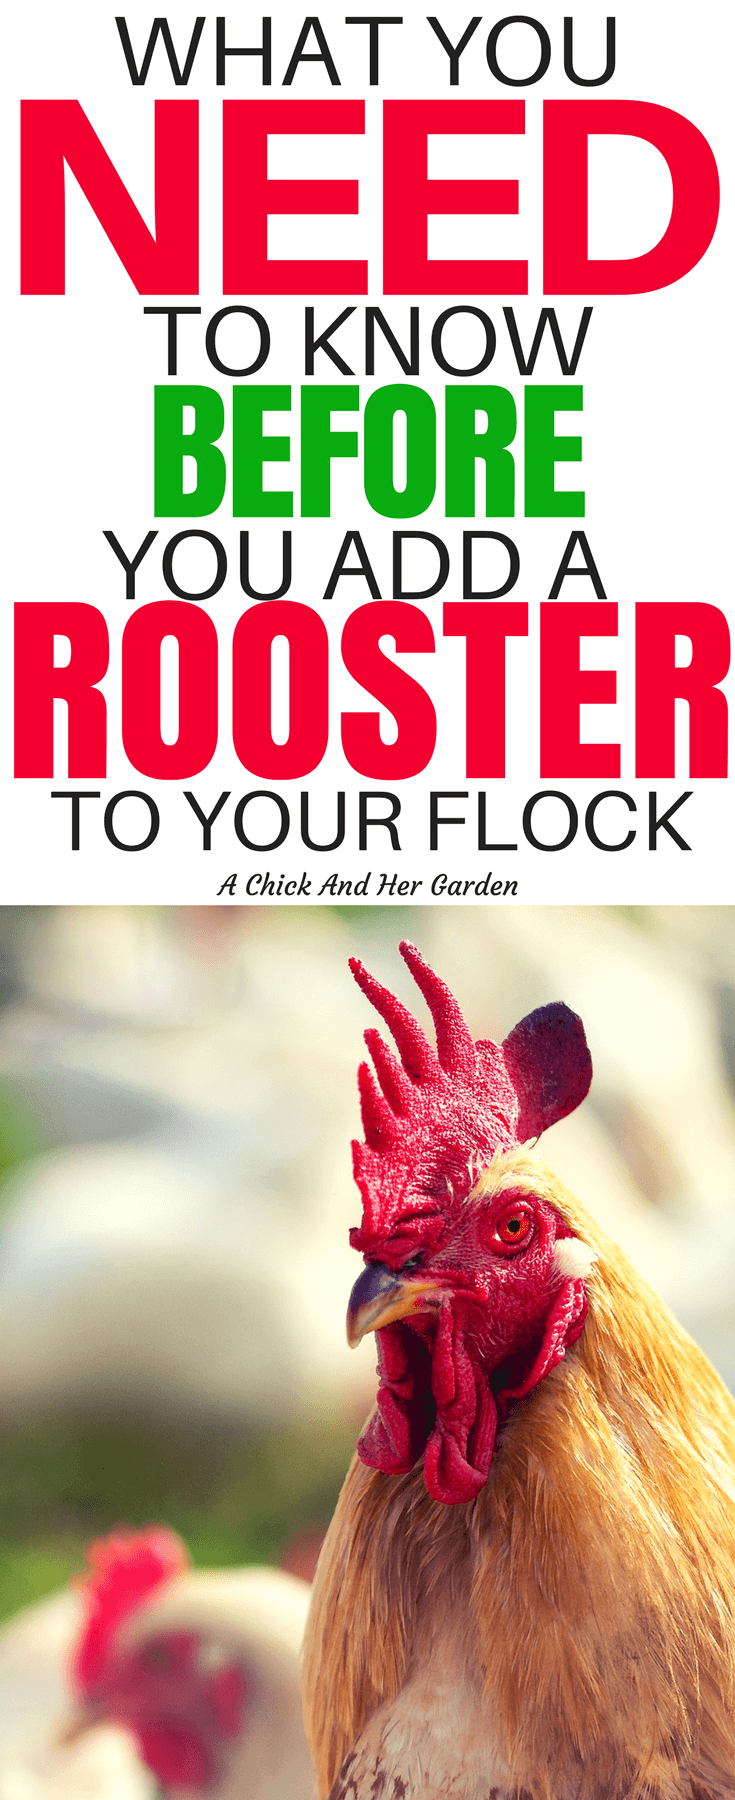 Roosters have a bad rep, and some of them have earned it! Here's what to expect when you add a rooster to your flock. #rooster #chickens #backyardchickens #homesteading #selfsufficiency #achickandhergarden